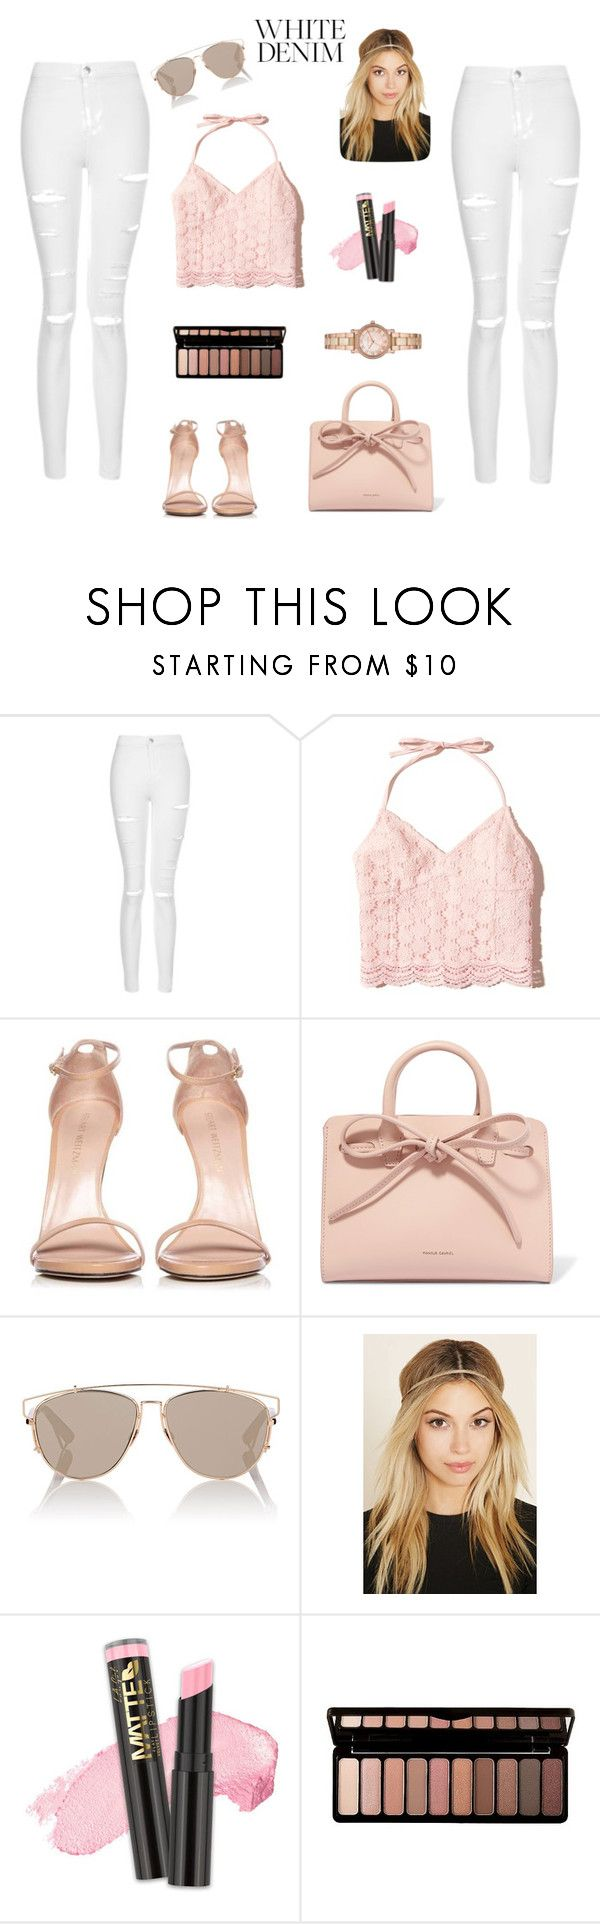 """""""White Denim"""" by california-cheerleader ❤ liked on Polyvore featuring Topshop, Hollister Co., Stuart Weitzman, Mansur Gavriel, Christian Dior, Forever 21, L.A. Girl, e.l.f. and Michael Kors"""